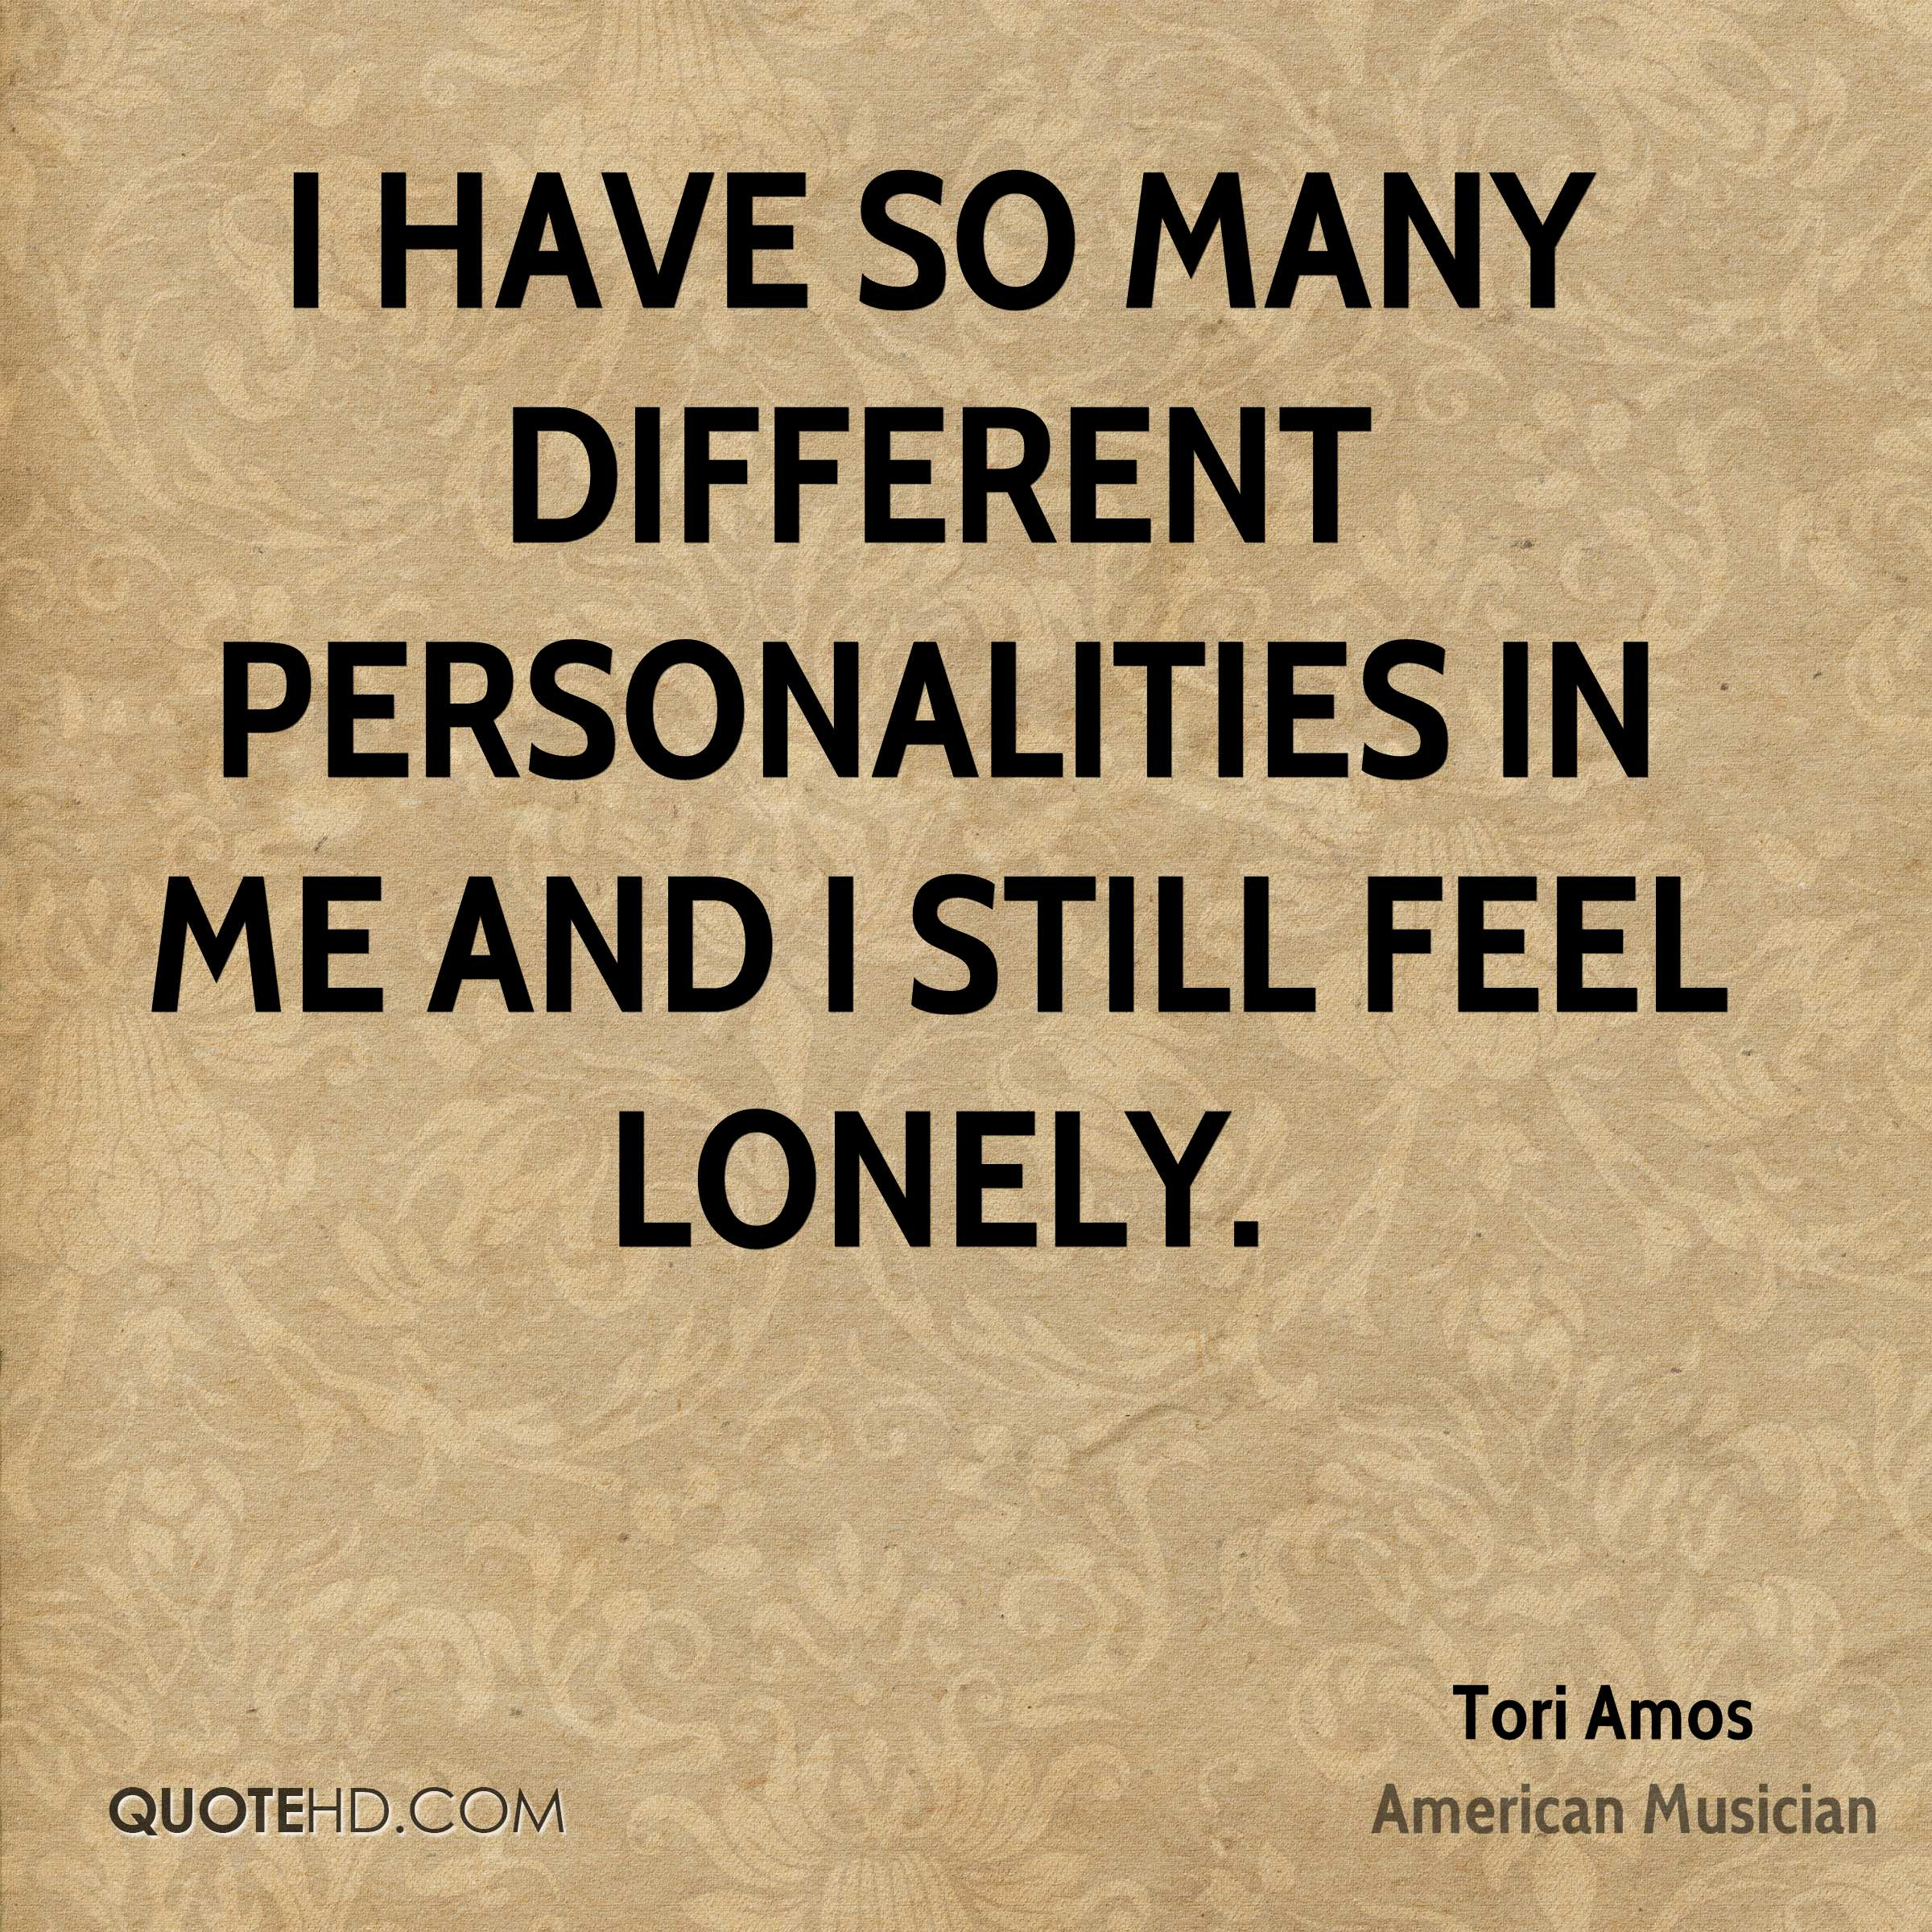 I have so many different personalities in me and I still feel lonely.